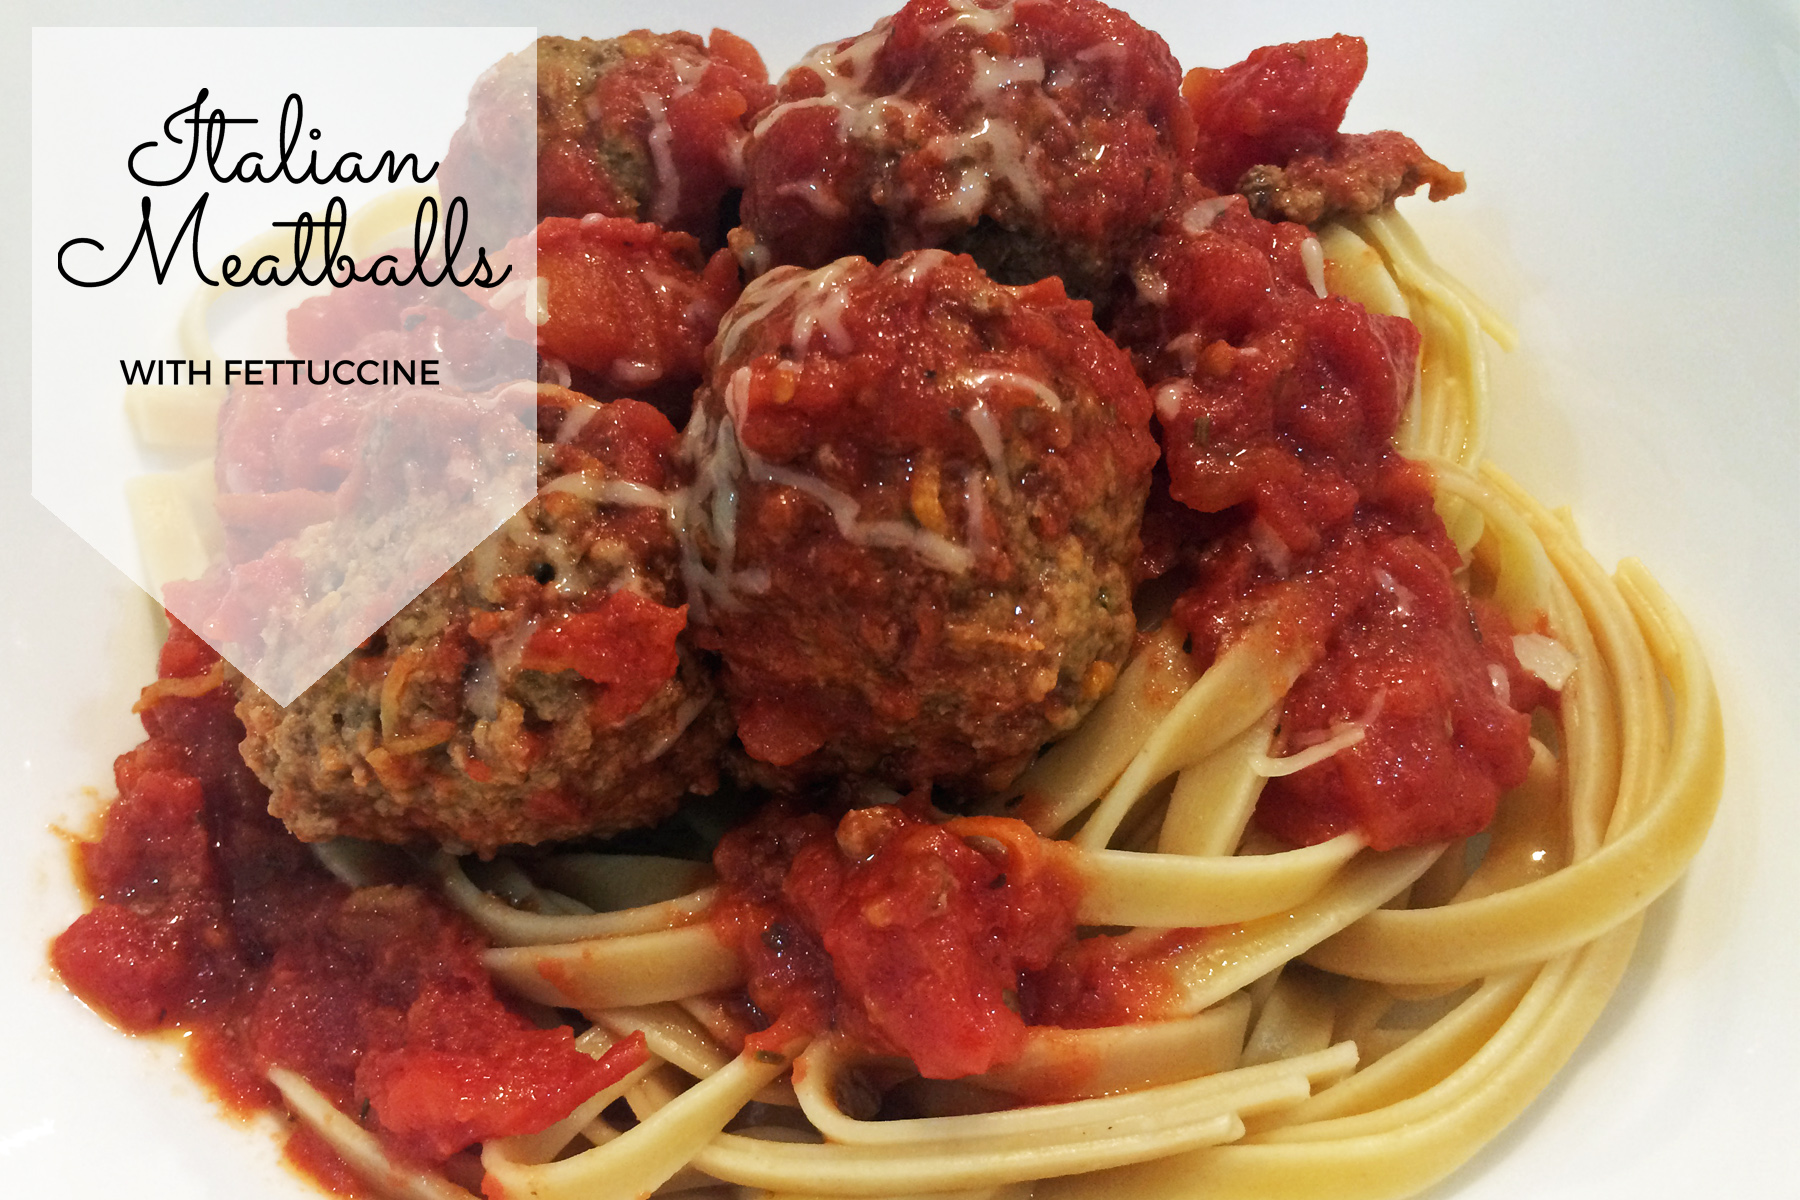 italian meatballs with fettuccine